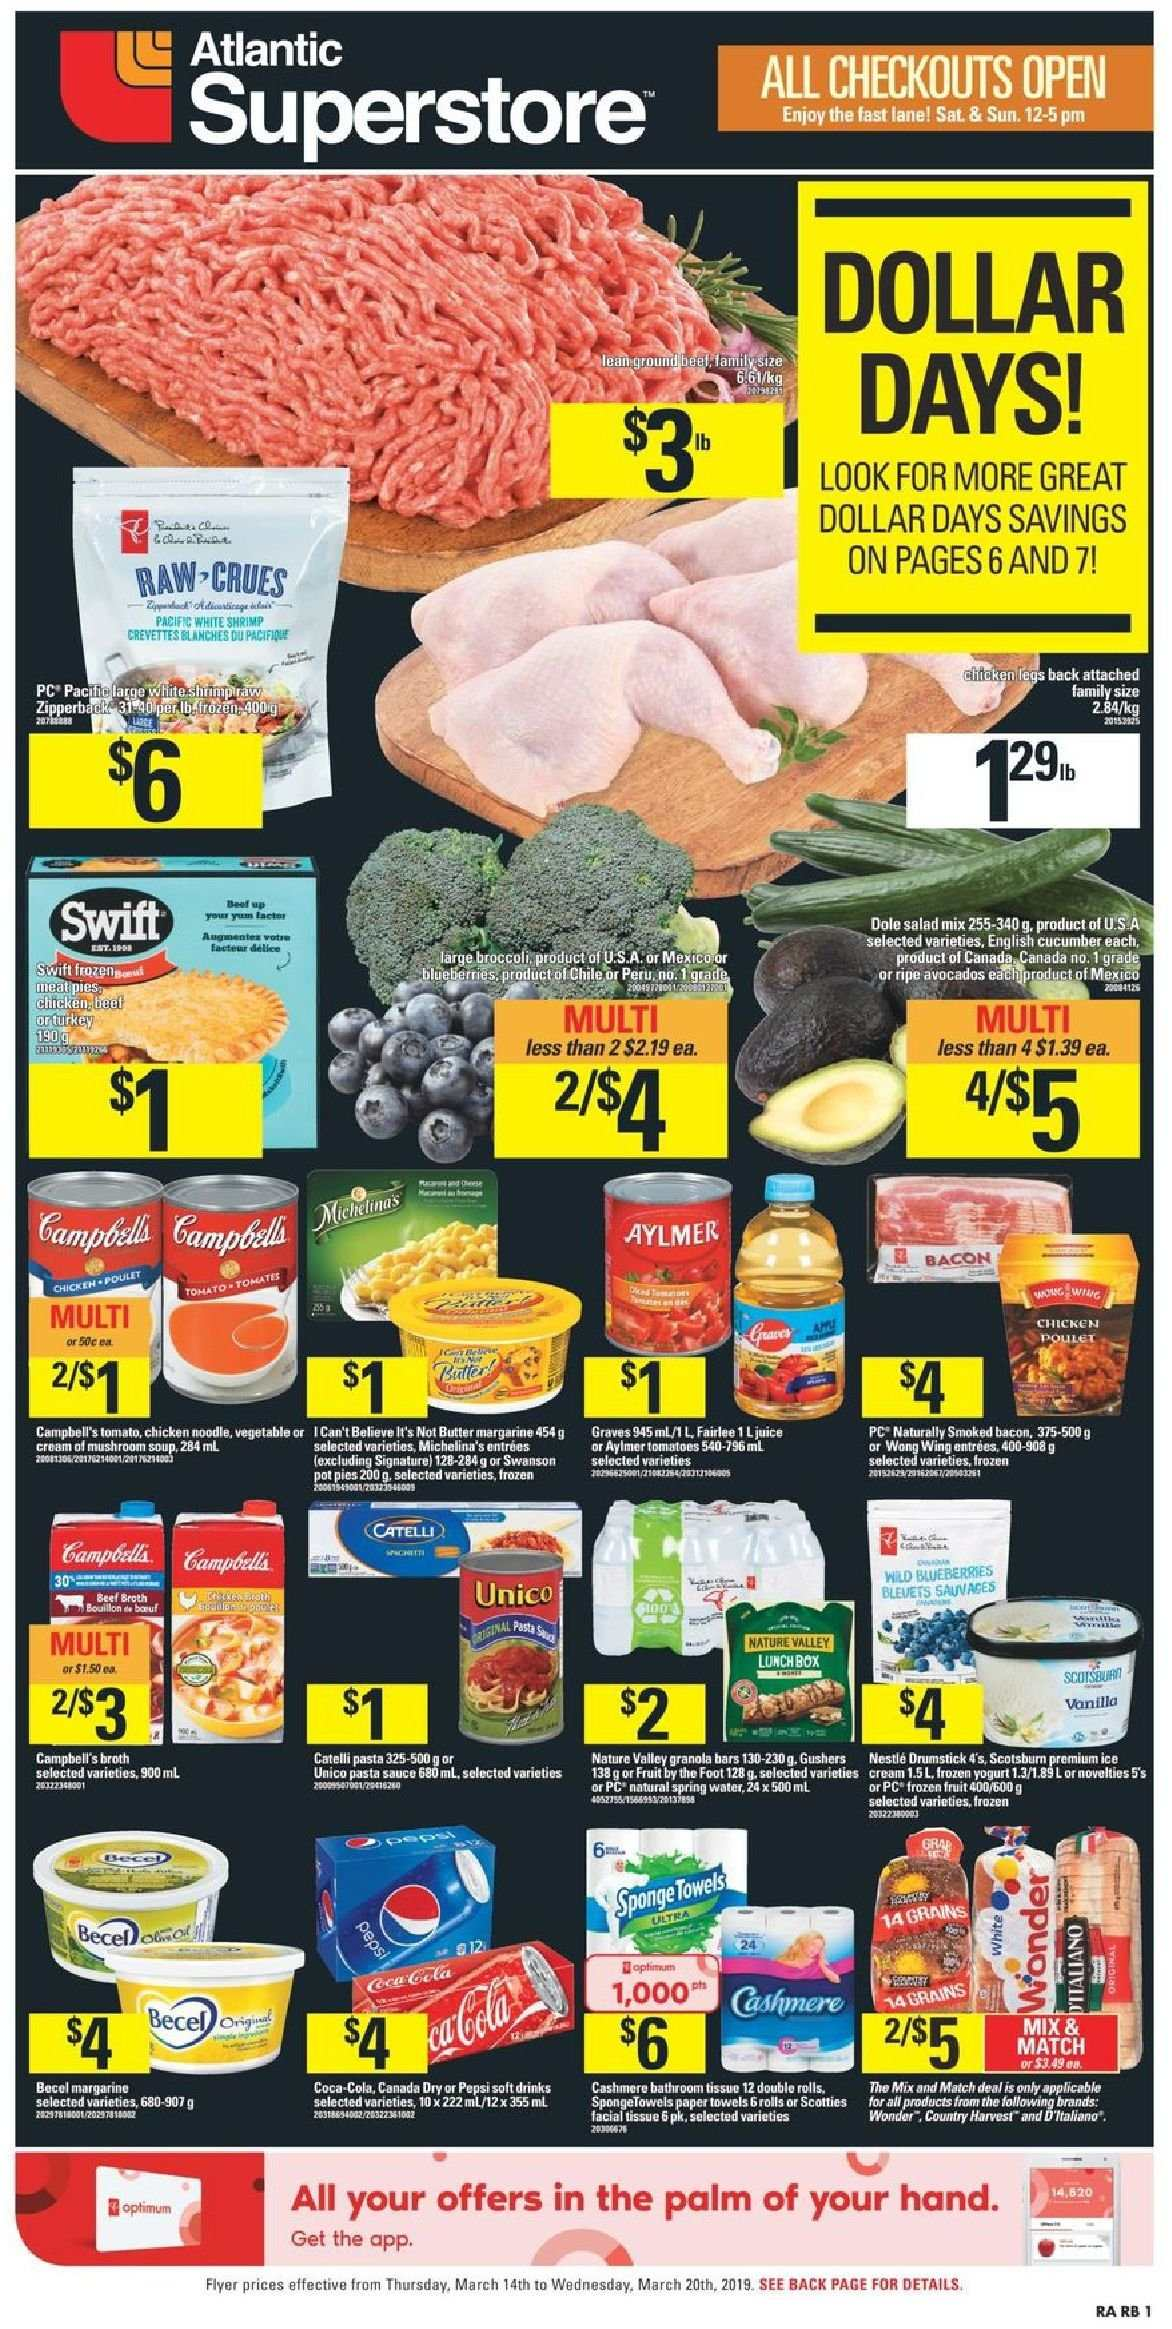 Atlantic Superstore Flyer - March 14, 2019 - March 20, 2019 - Sales products - avocado, bacon, beef meat, blueberries, broccoli, butter, canada dry, cream, cucumbers, frozen, granola, granola bars, ground beef, margarine, nestlé, shrimp, tomatoes, towel, yogurt, chicken, paper towel, pasta sauce, pepsi, juice, vegetable, pasta, salad, sauce, crevette. Page 1.